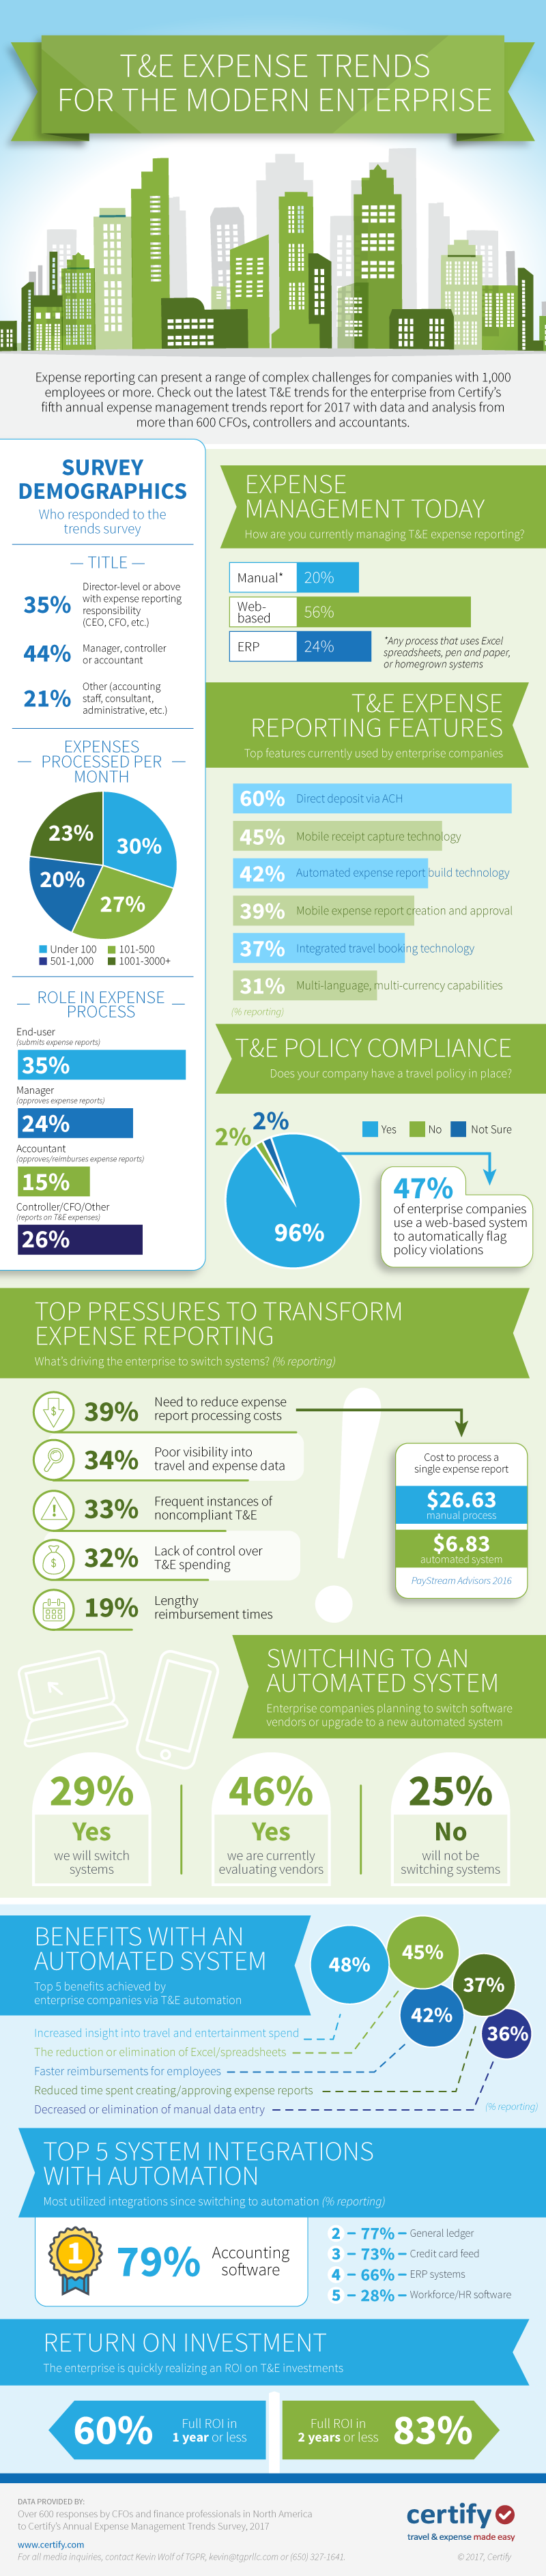 2017 T&E expense trends for the modern enterprise